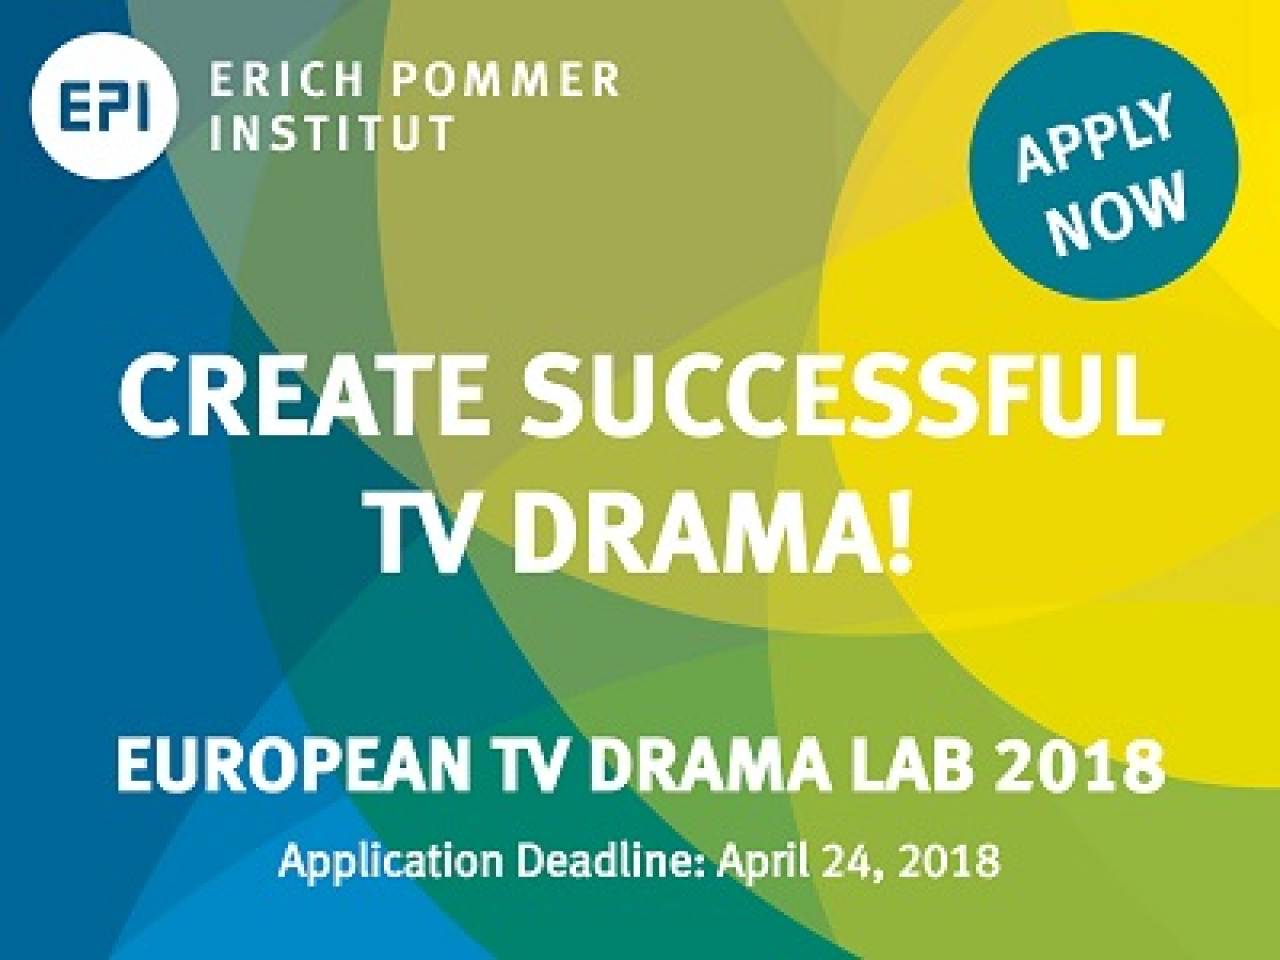 EPI European TV Drama Lab 2018